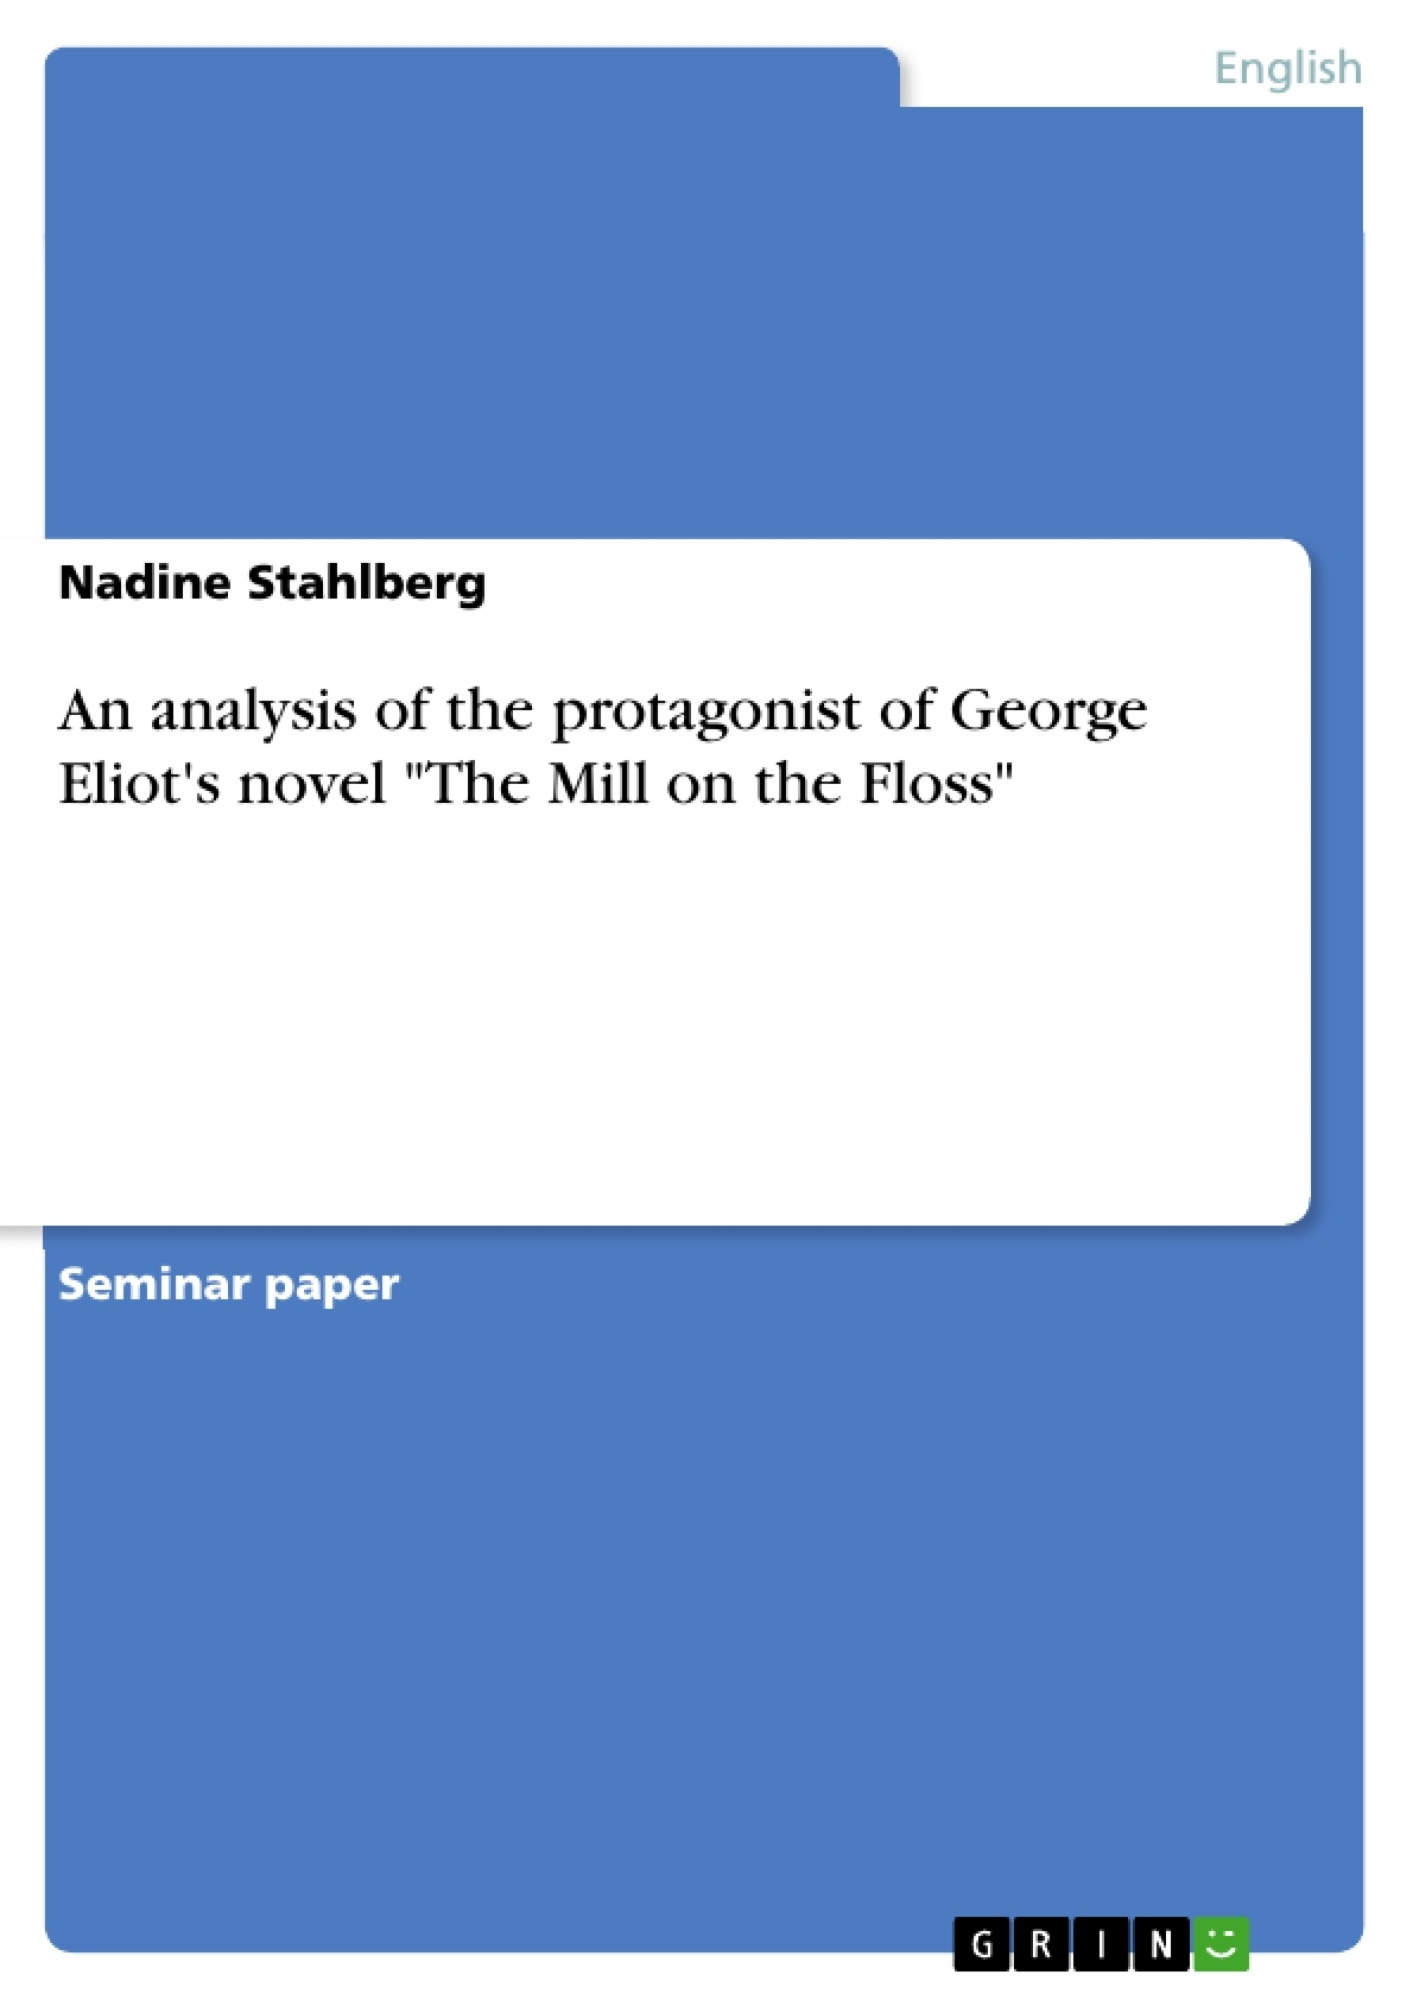 """Title: An analysis of the protagonist of George Eliot's novel """"The Mill on the Floss"""""""